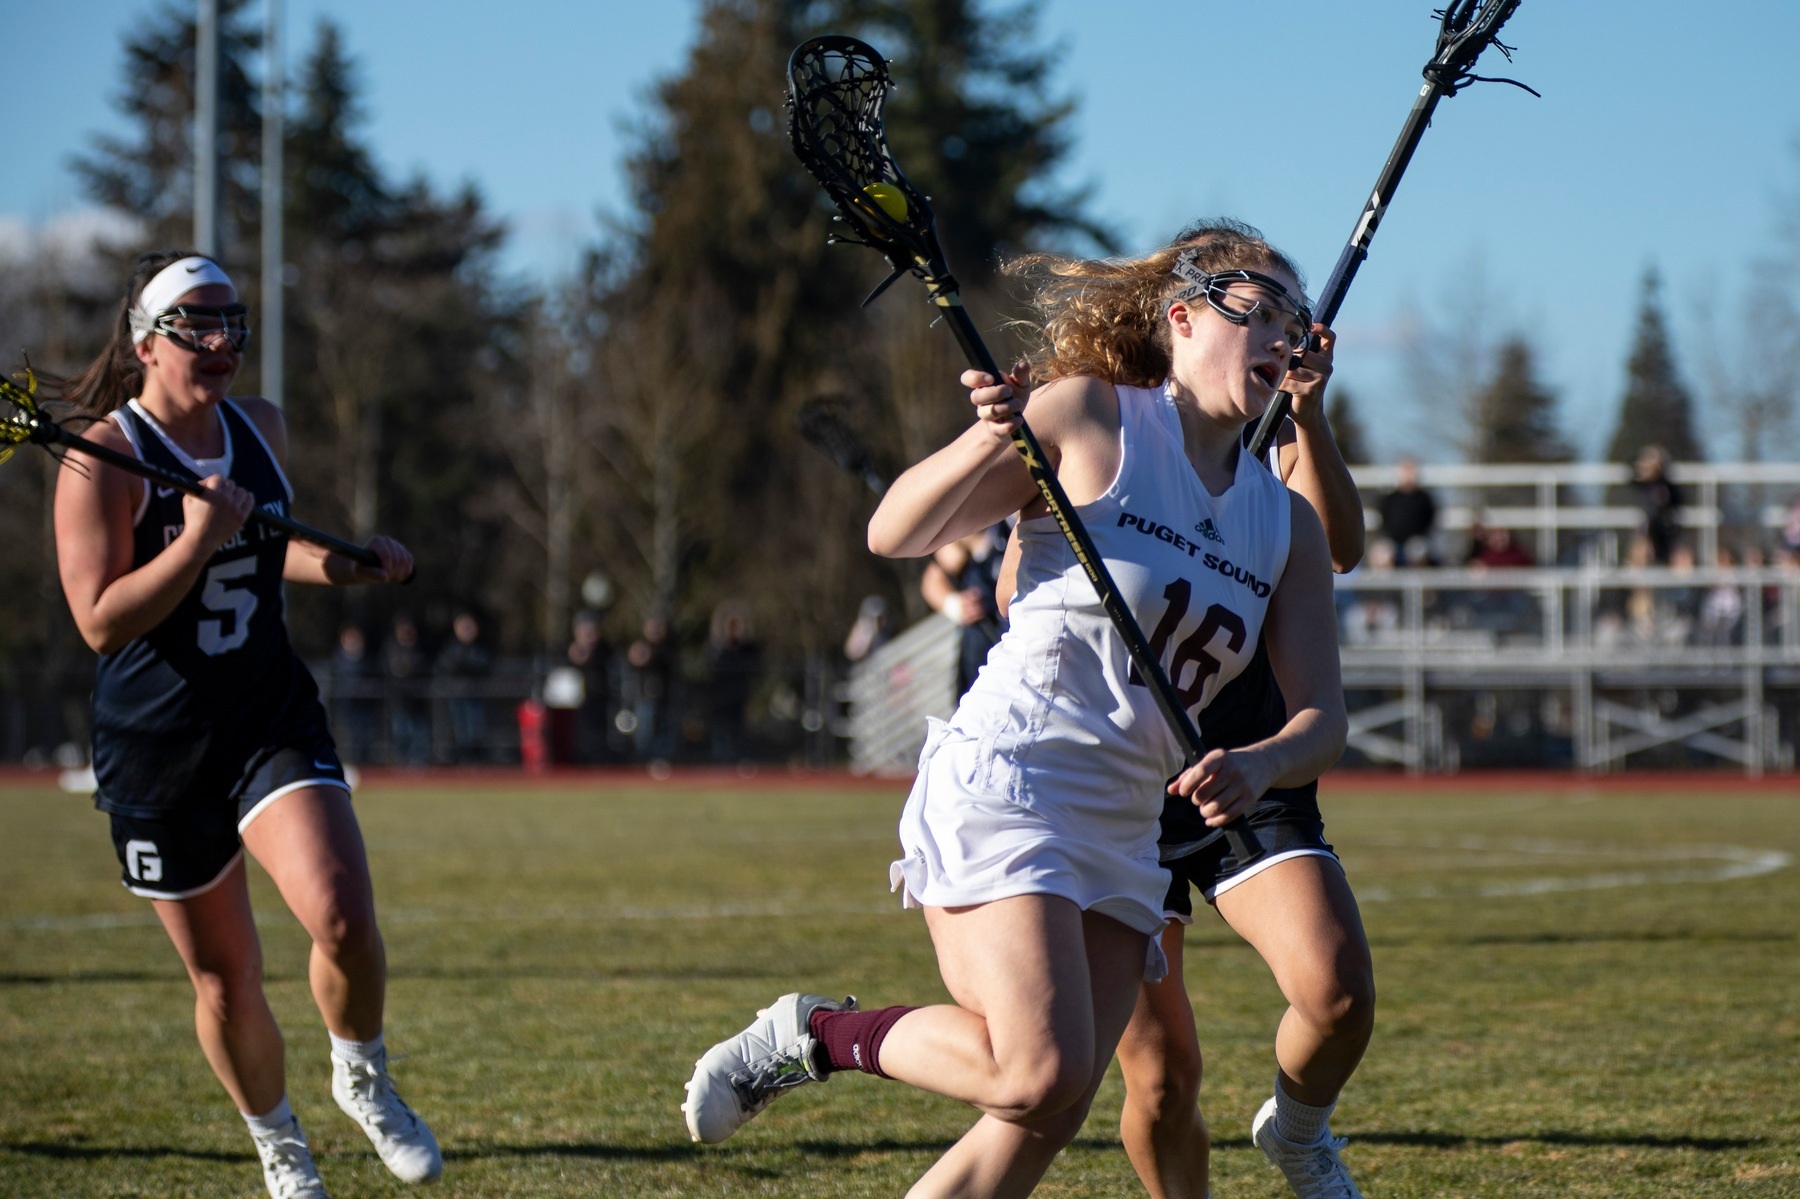 Three Loggers net three goals to beat Johnson & Wales, 15-7